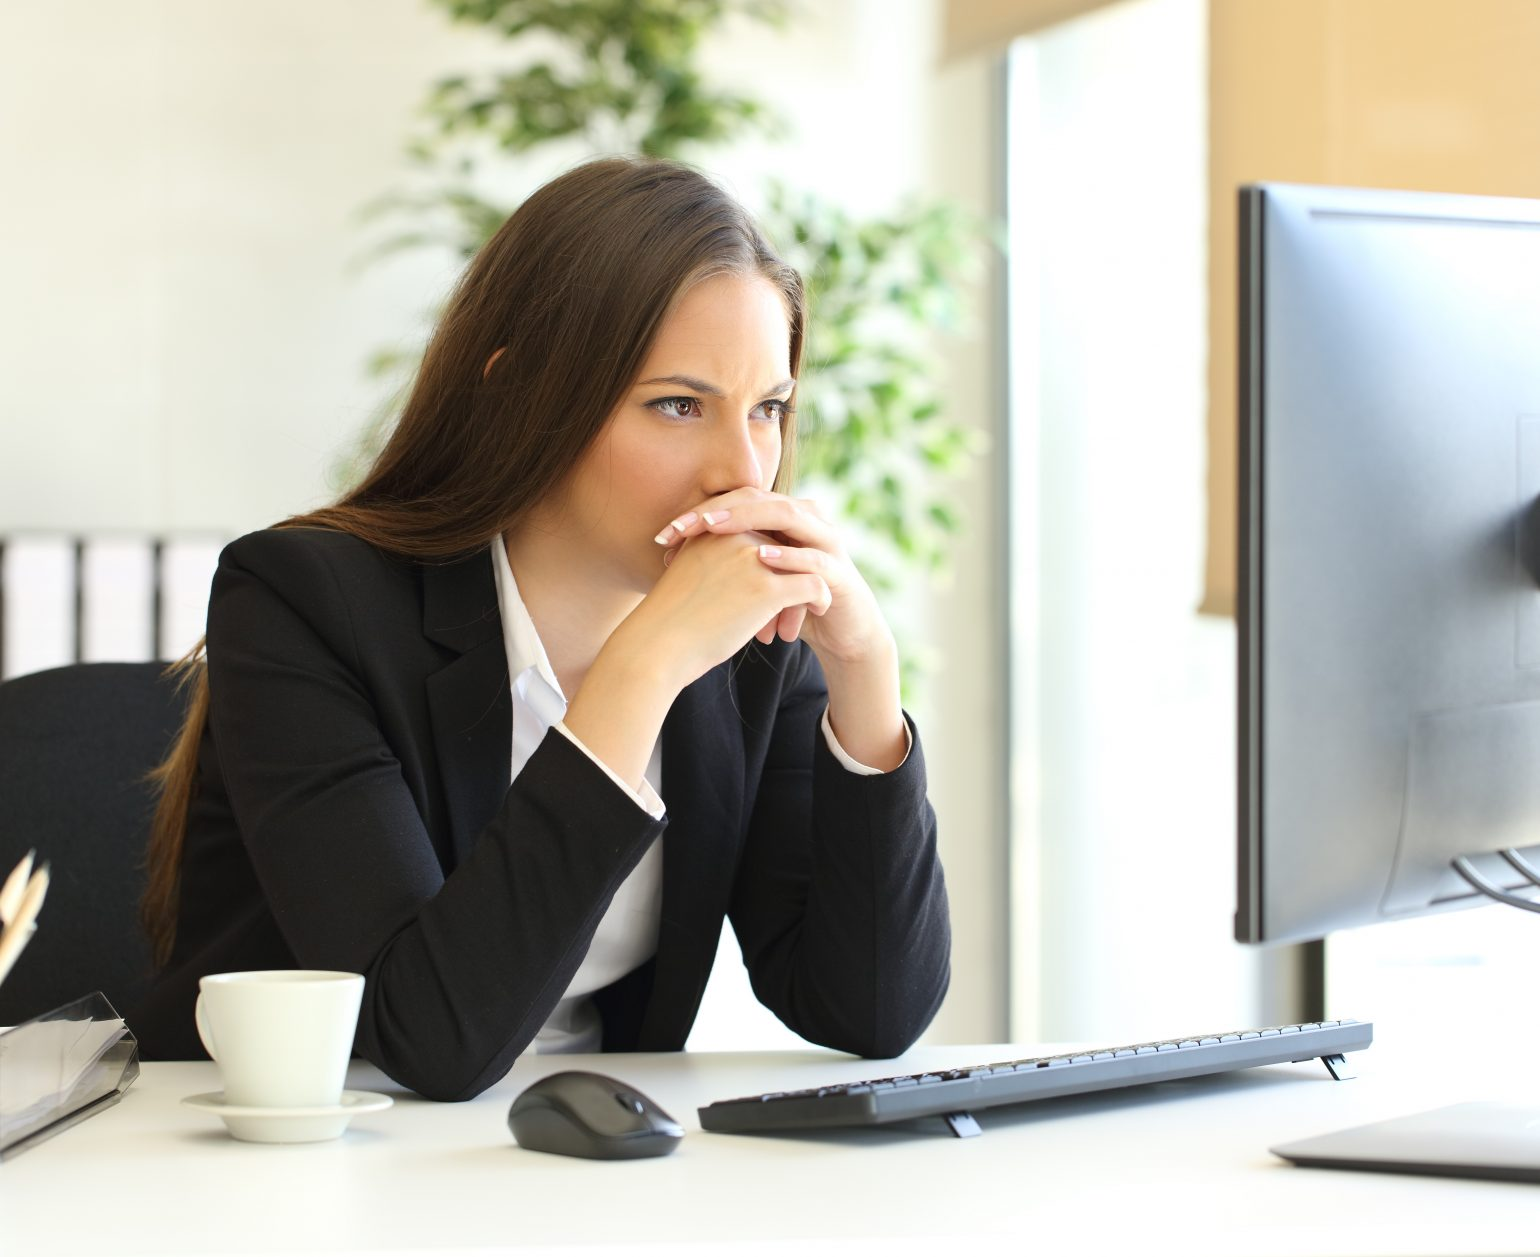 woman looks at computer